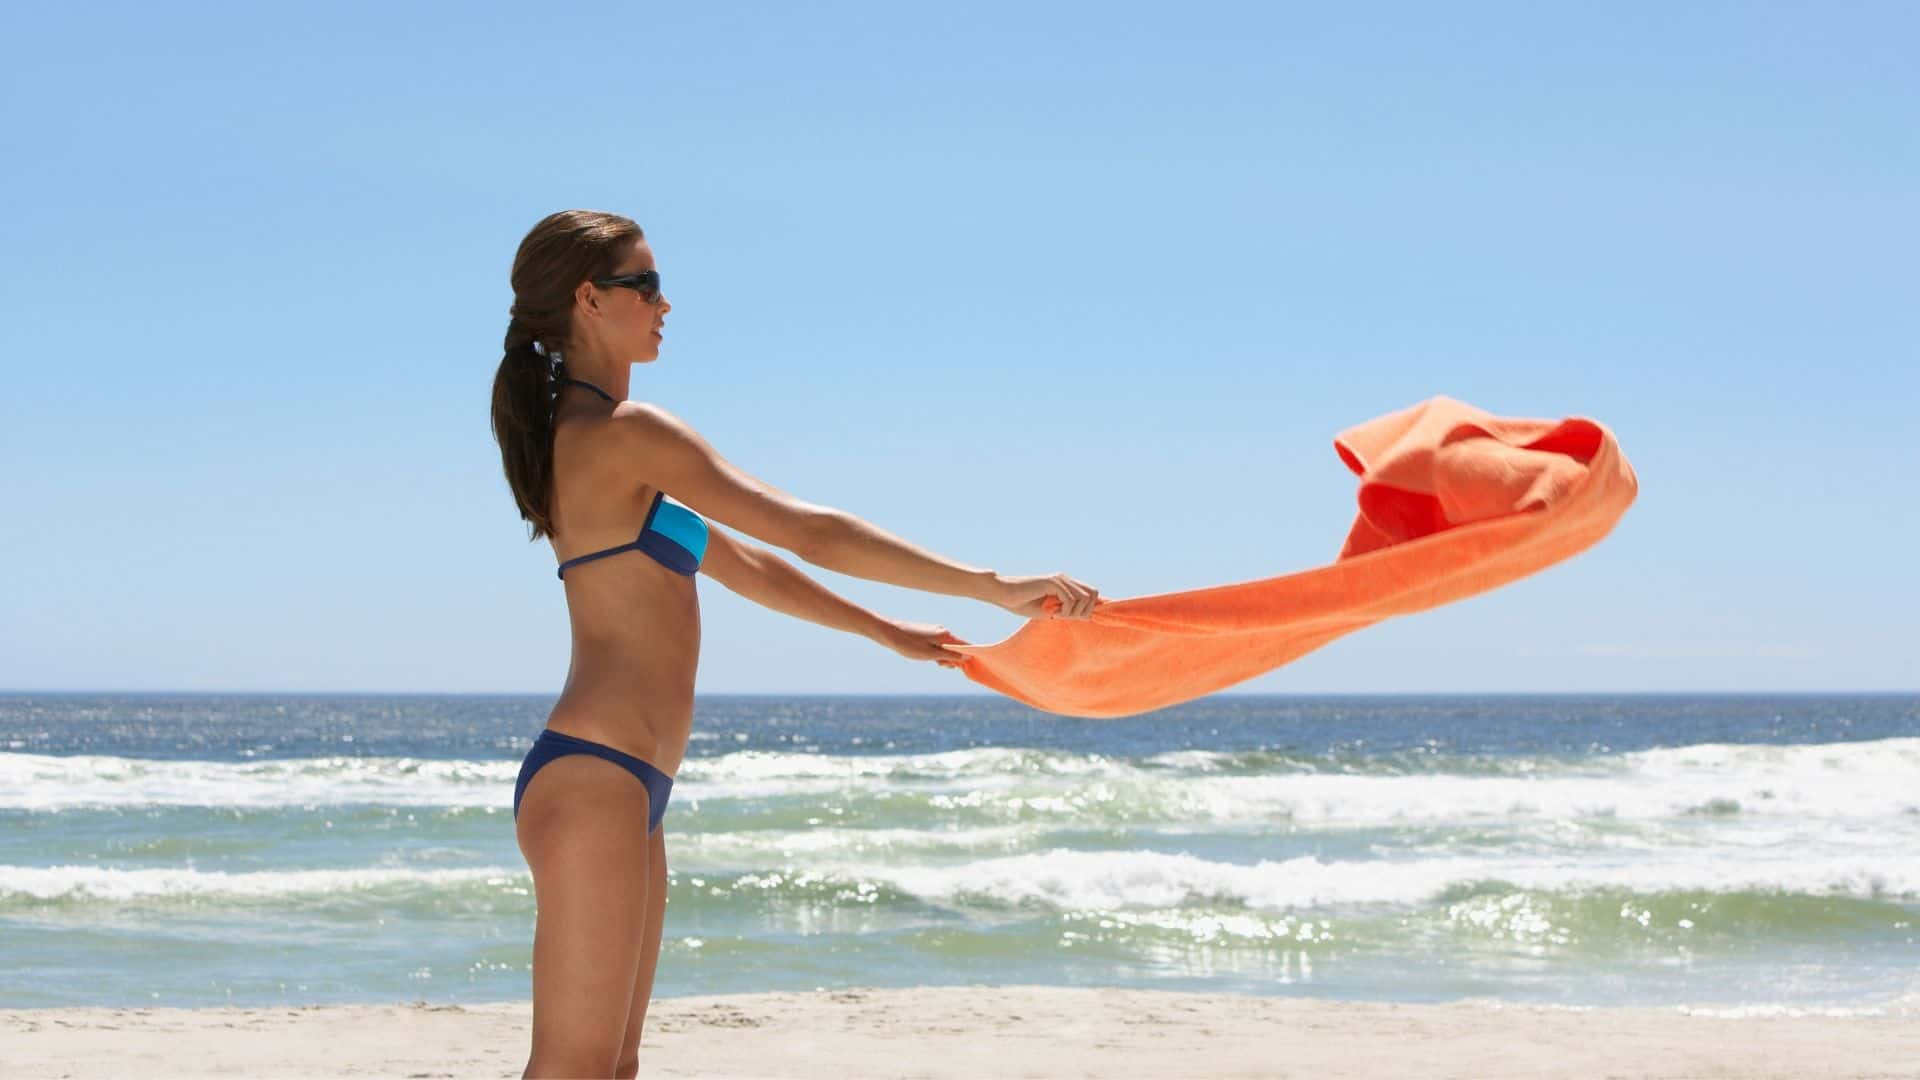 towel that repels sand